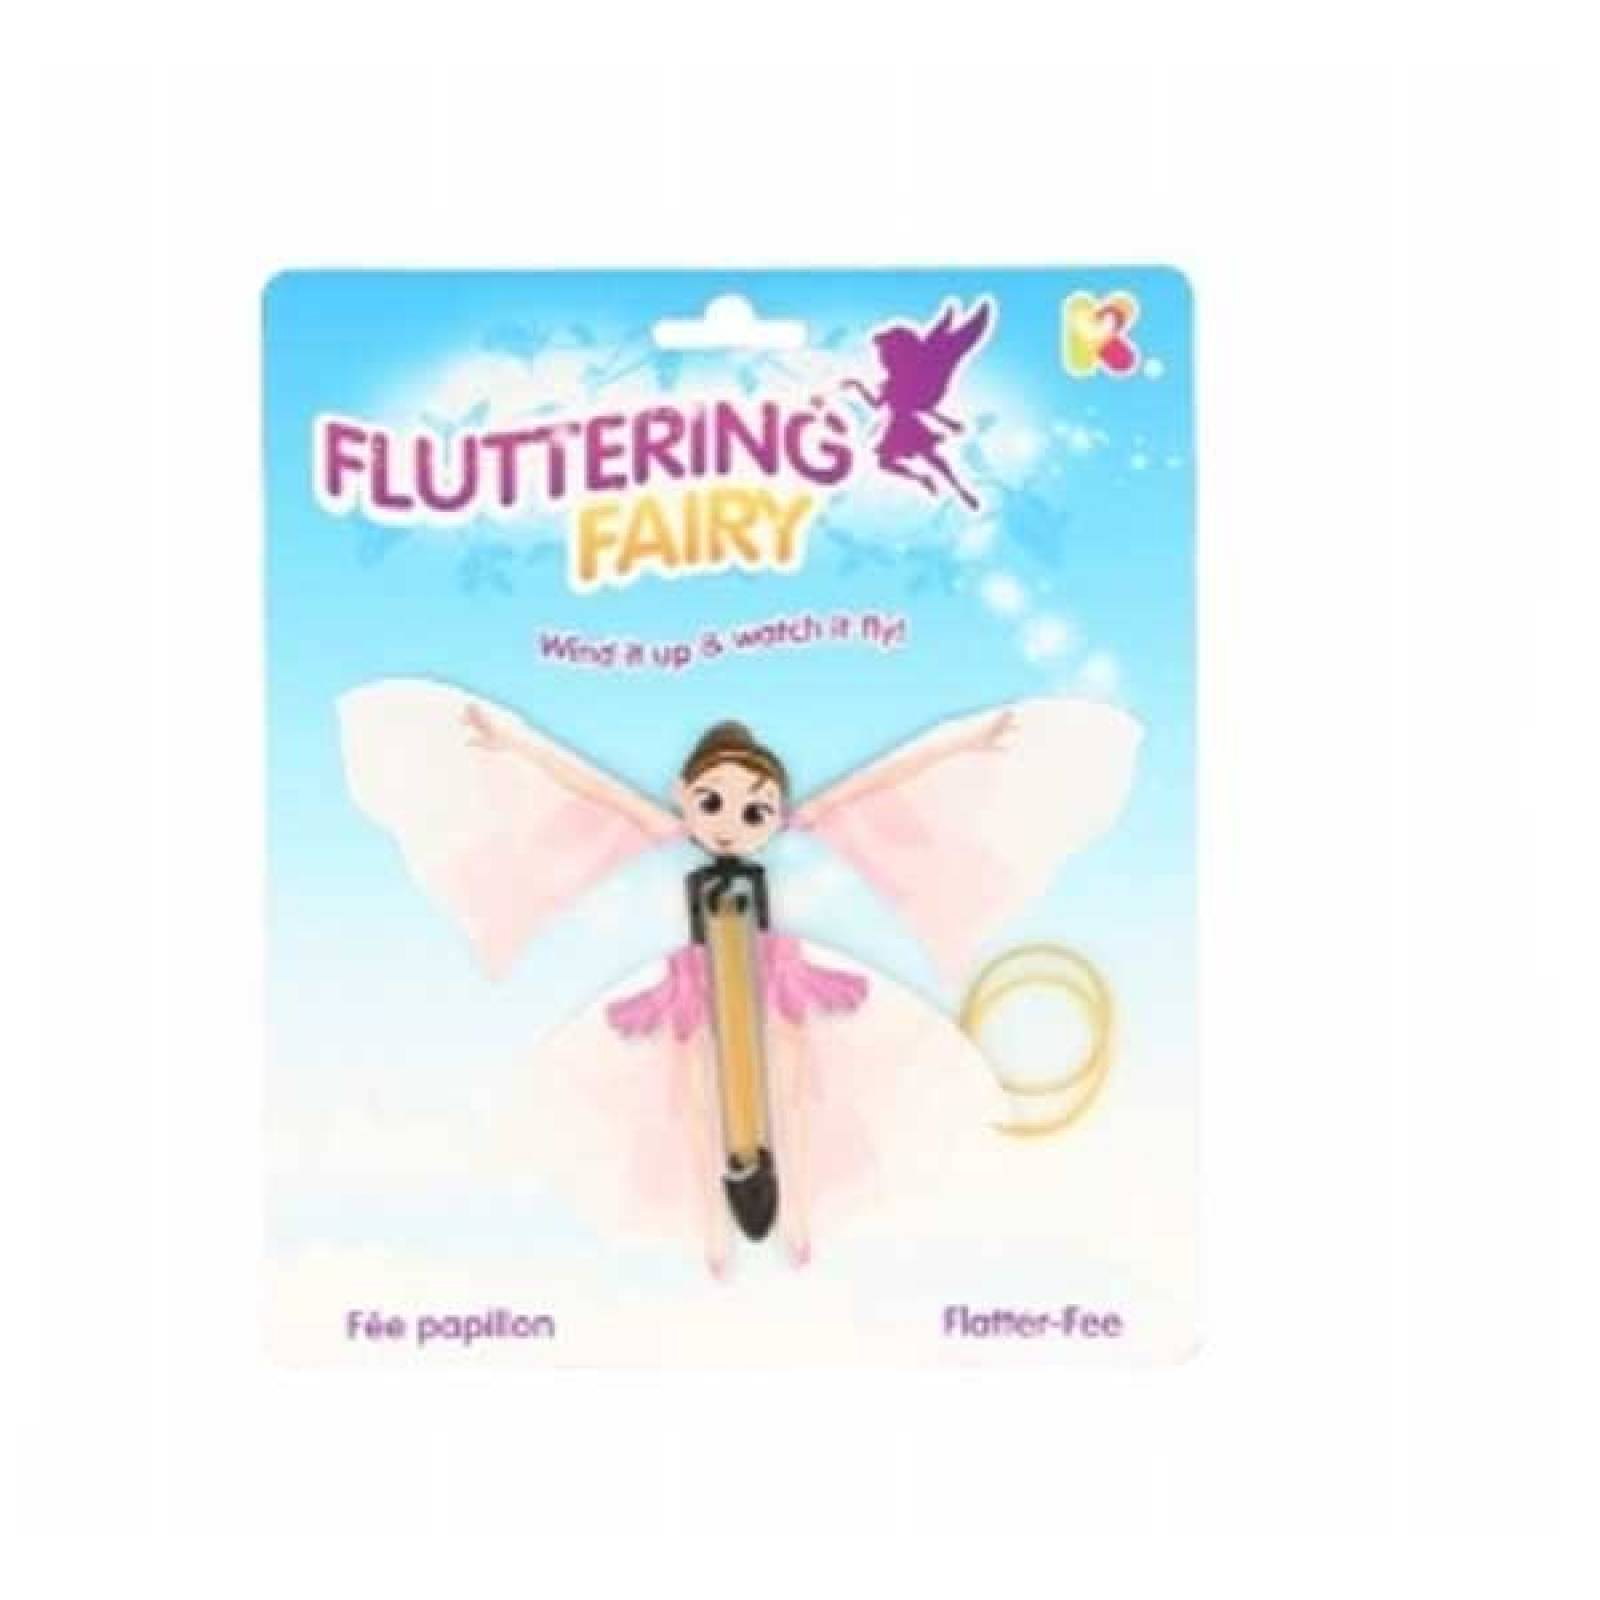 Fluttering Fairy Flying Fairy